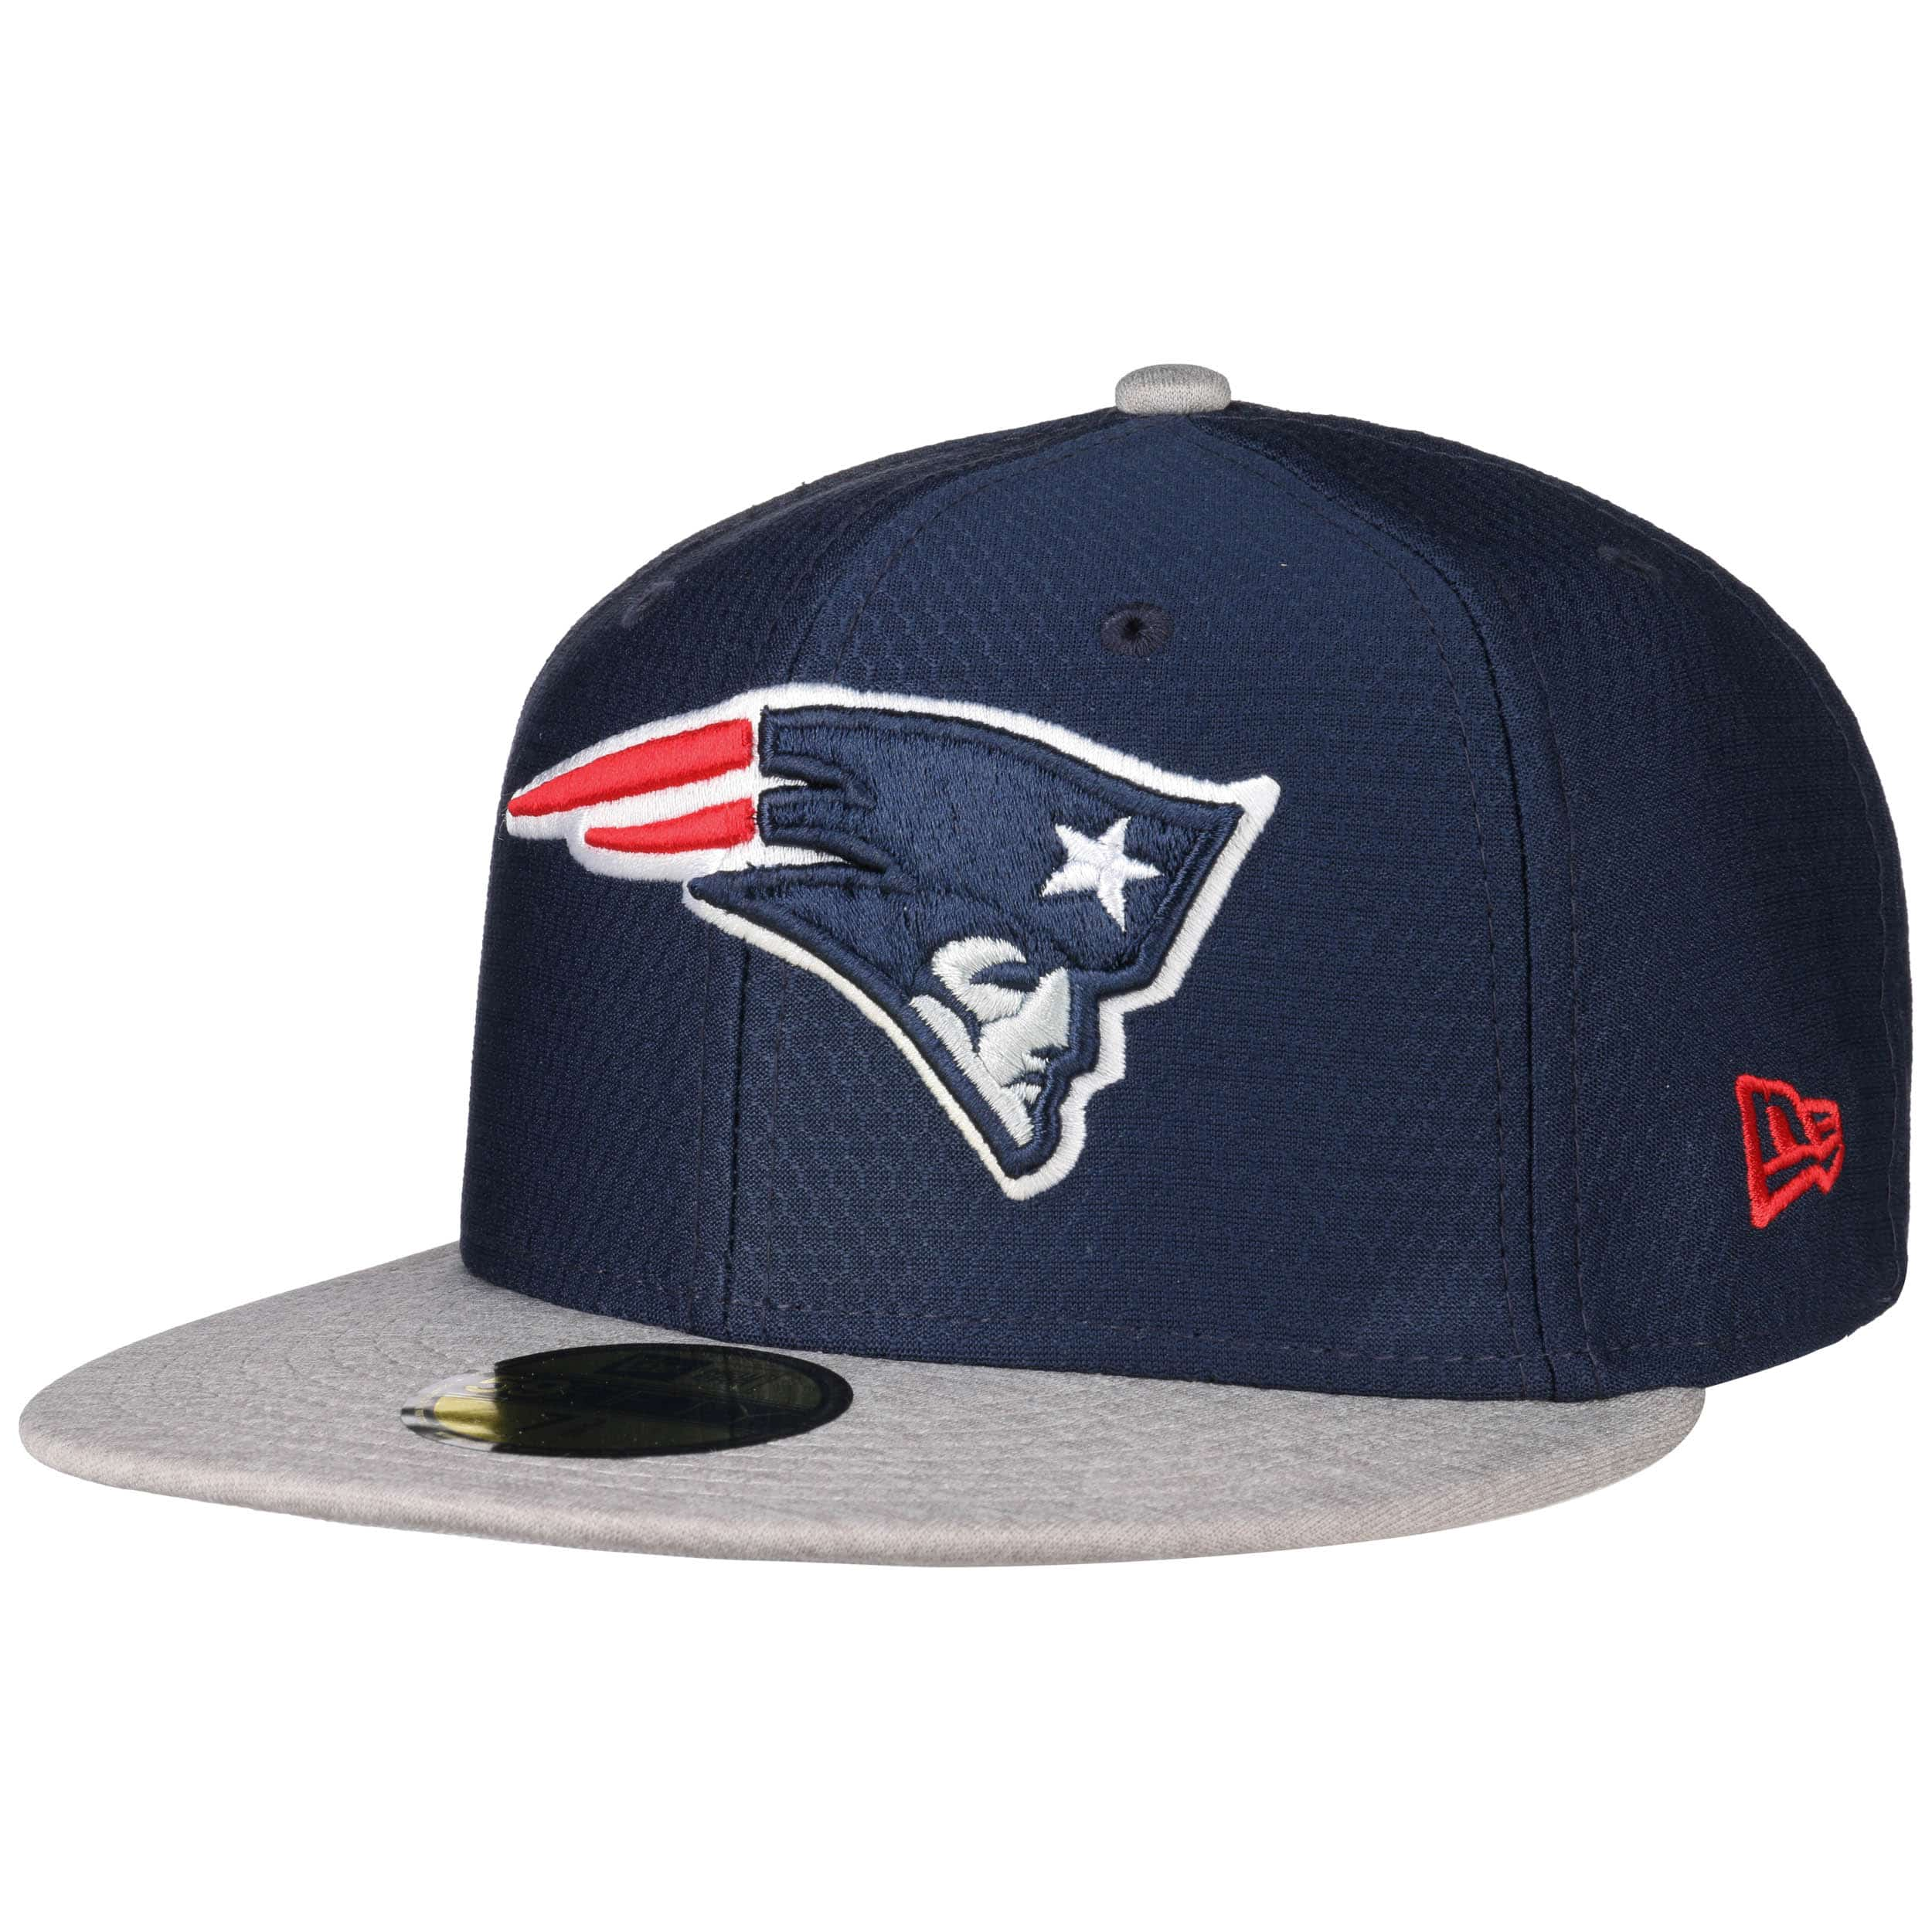 2e83cc73f07d ... 59Fifty DryEra Patriots Cap by New Era - schwarz 6